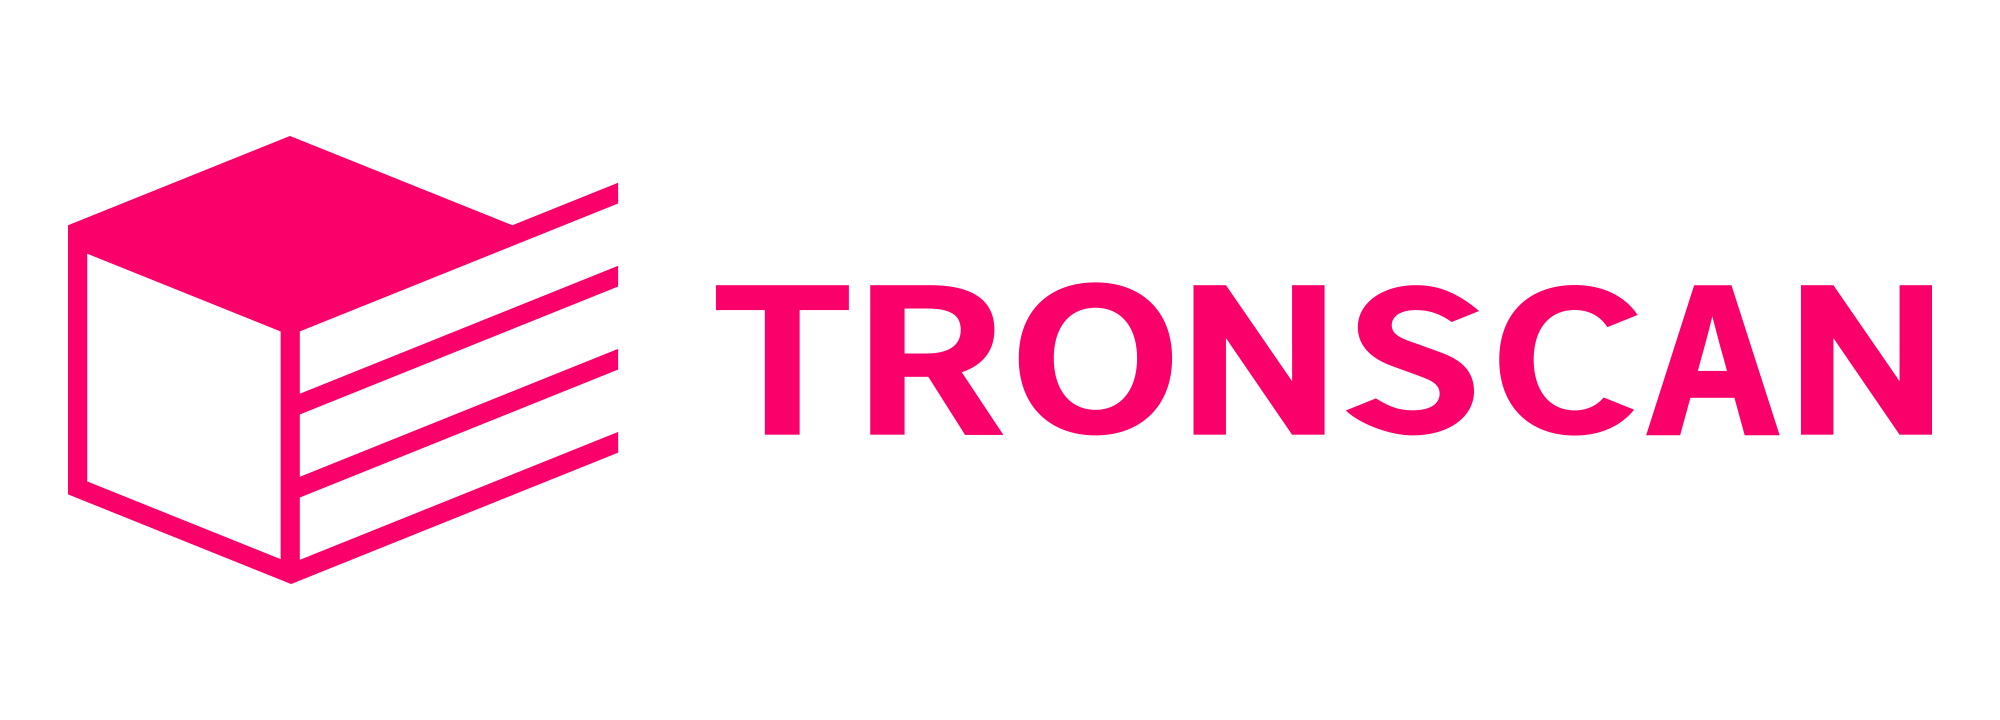 TRONSCAN Support Center Help Center home page